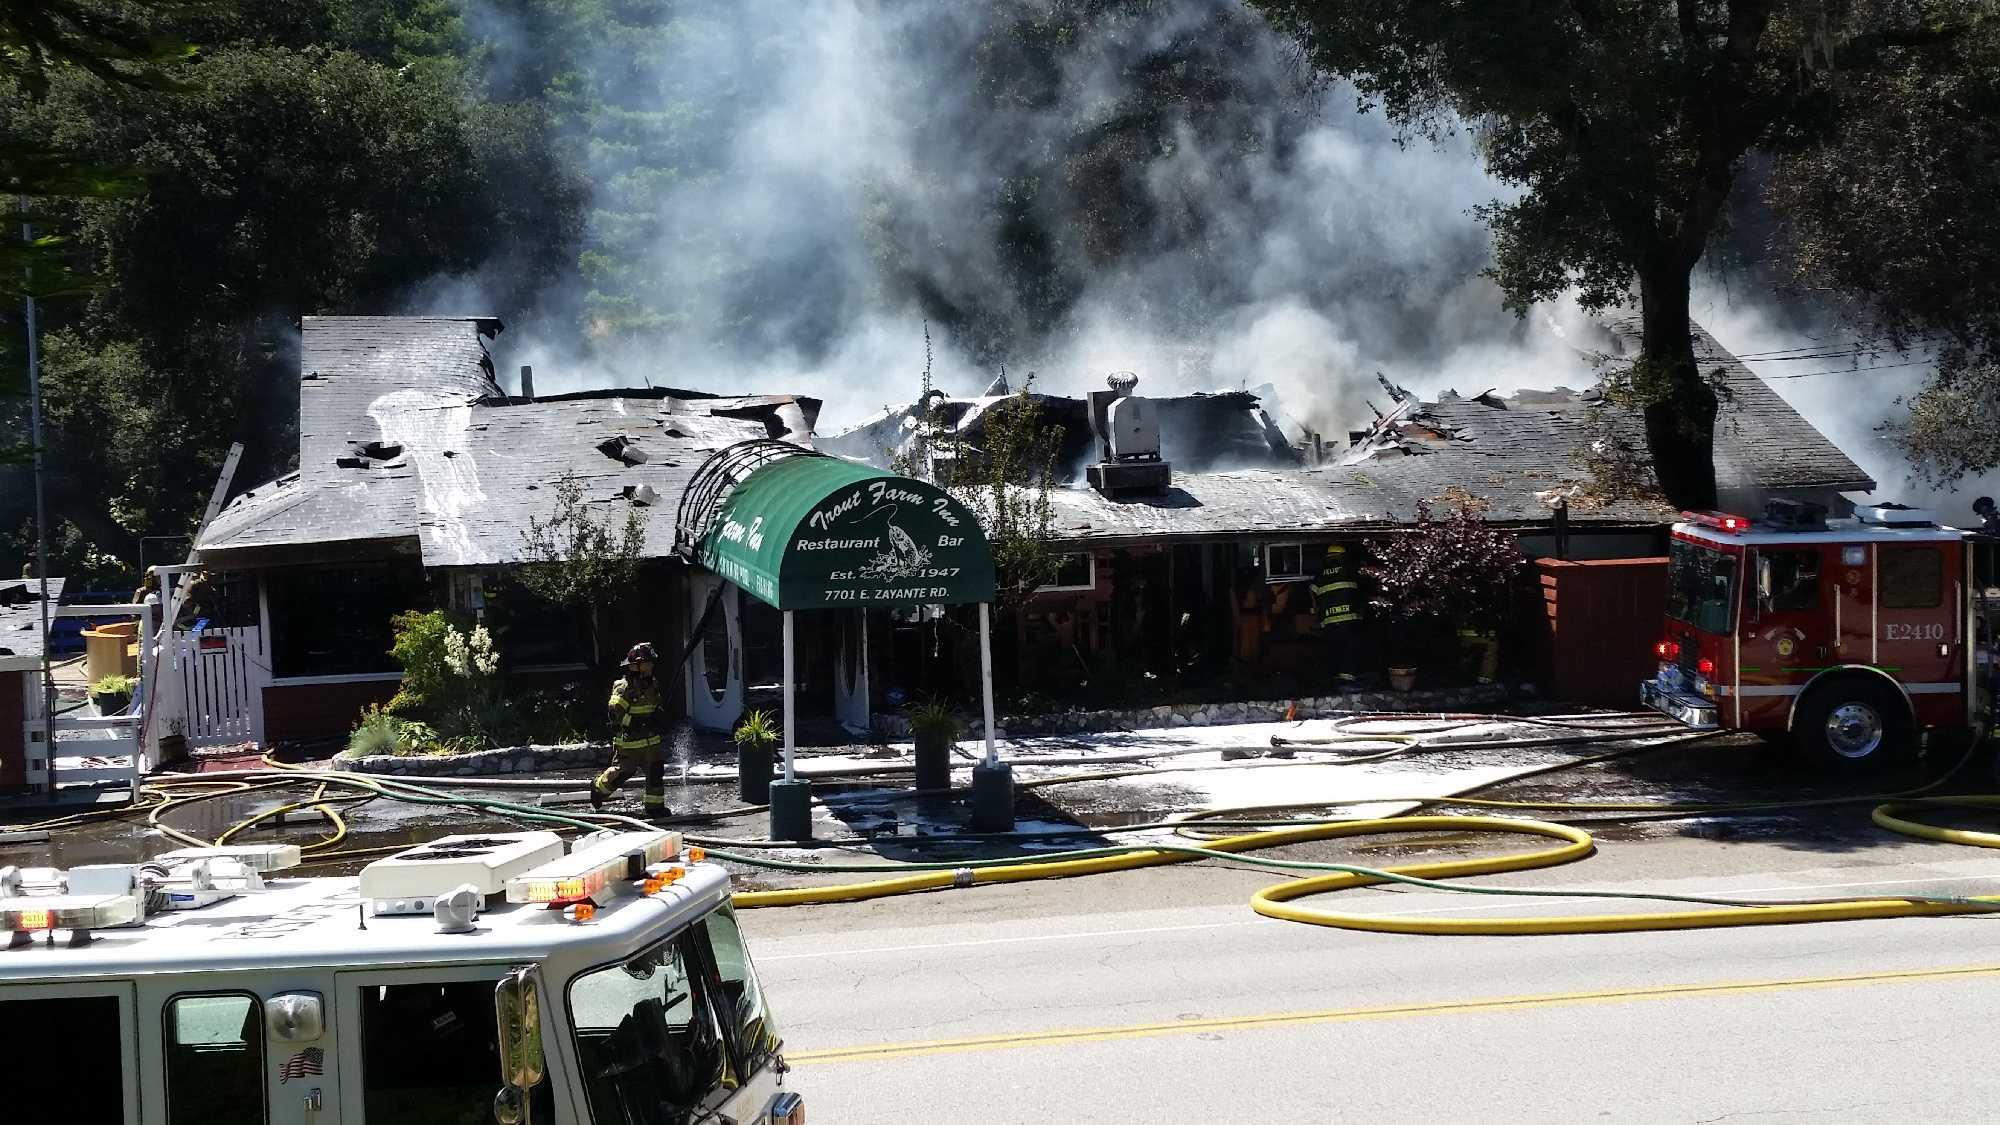 Felton firefighters battled a fire Sunday afternoon at the Trout Farm Inn.